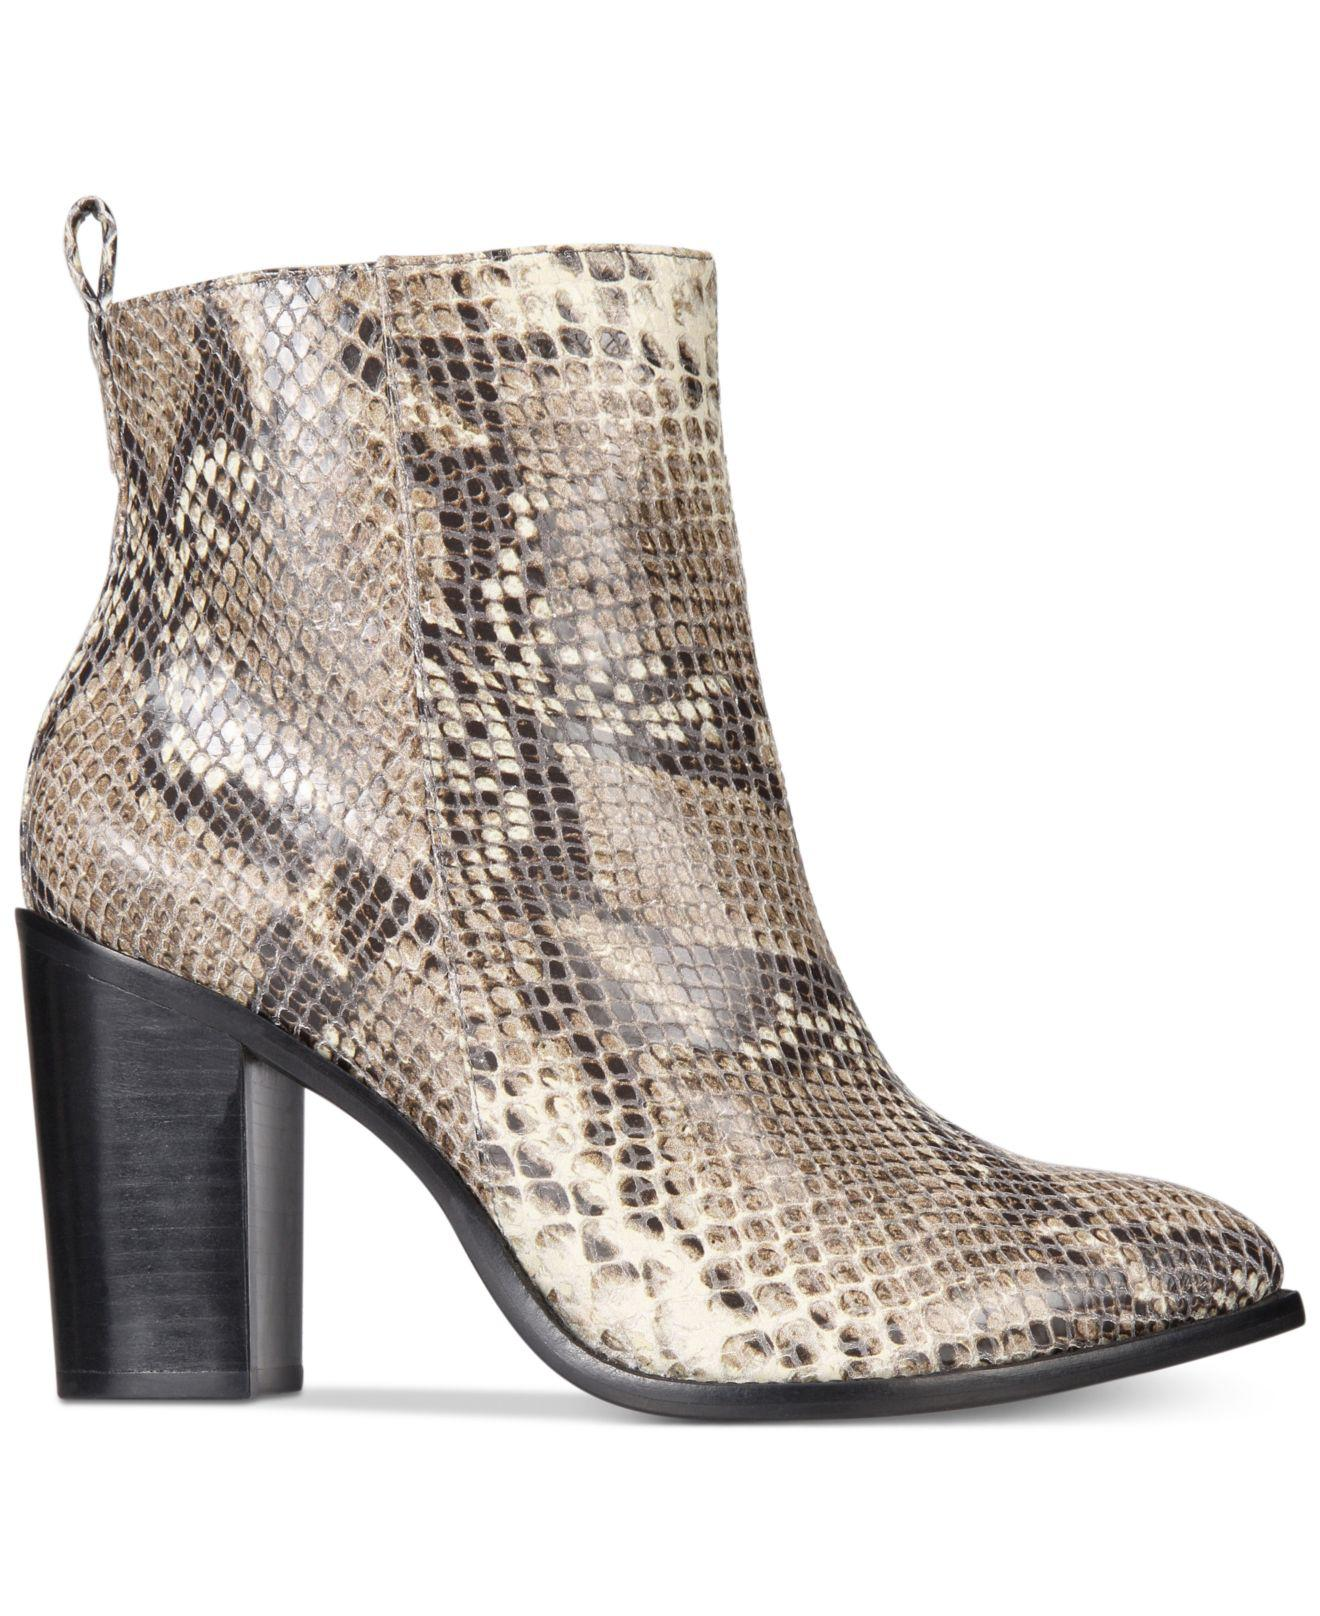 33ac0305429 Details about DKNY Womens Houston Closed Toe Mid-Calf Fashion Boots